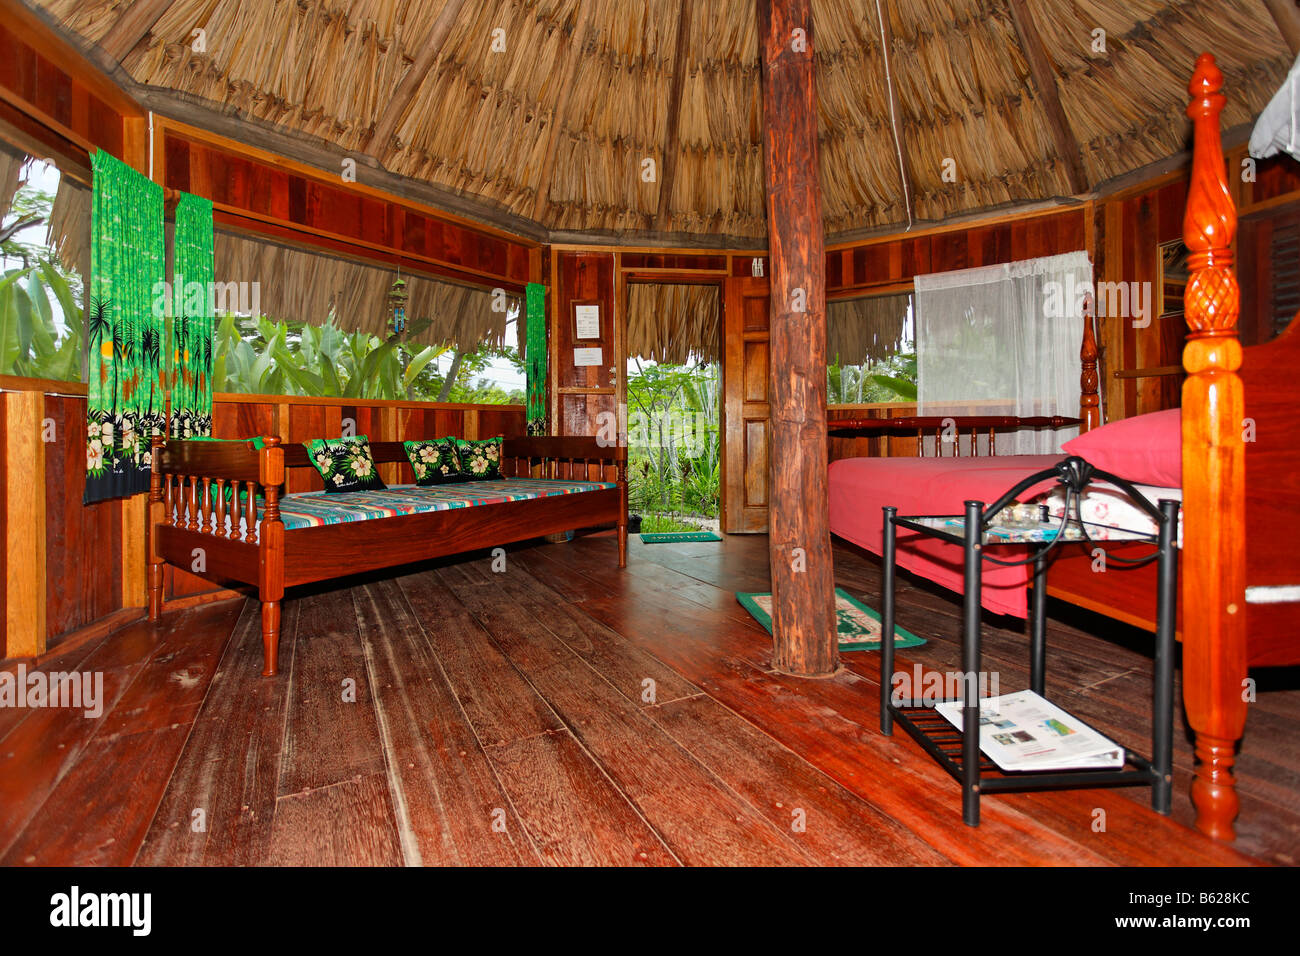 Sun Creek Resort, interior view, Punta Gorda, Belize, Central America - Stock Image